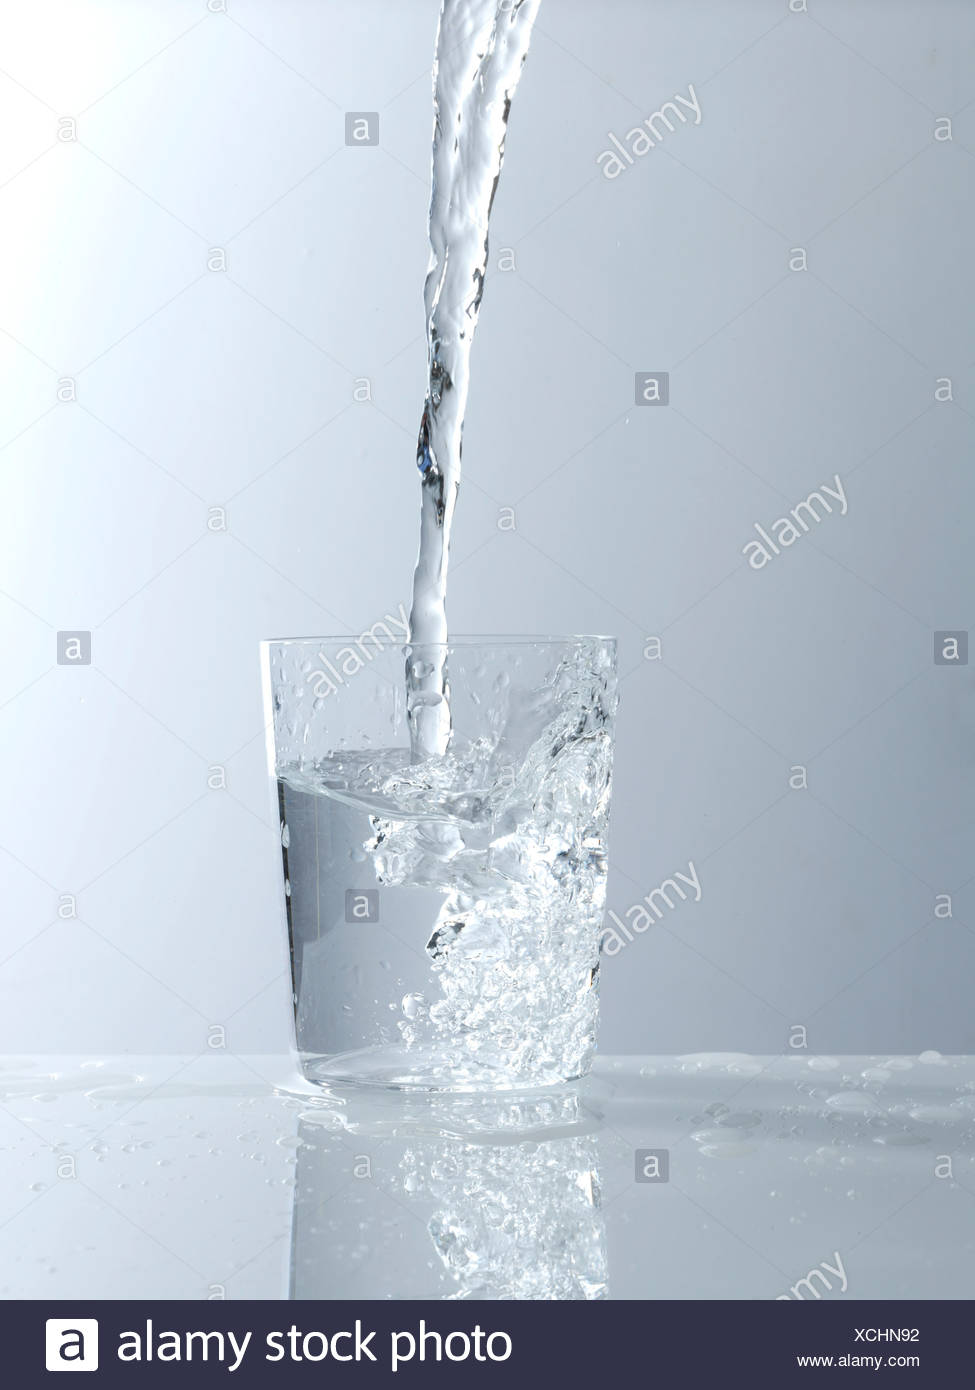 Water being poured into a glass Stock Photo